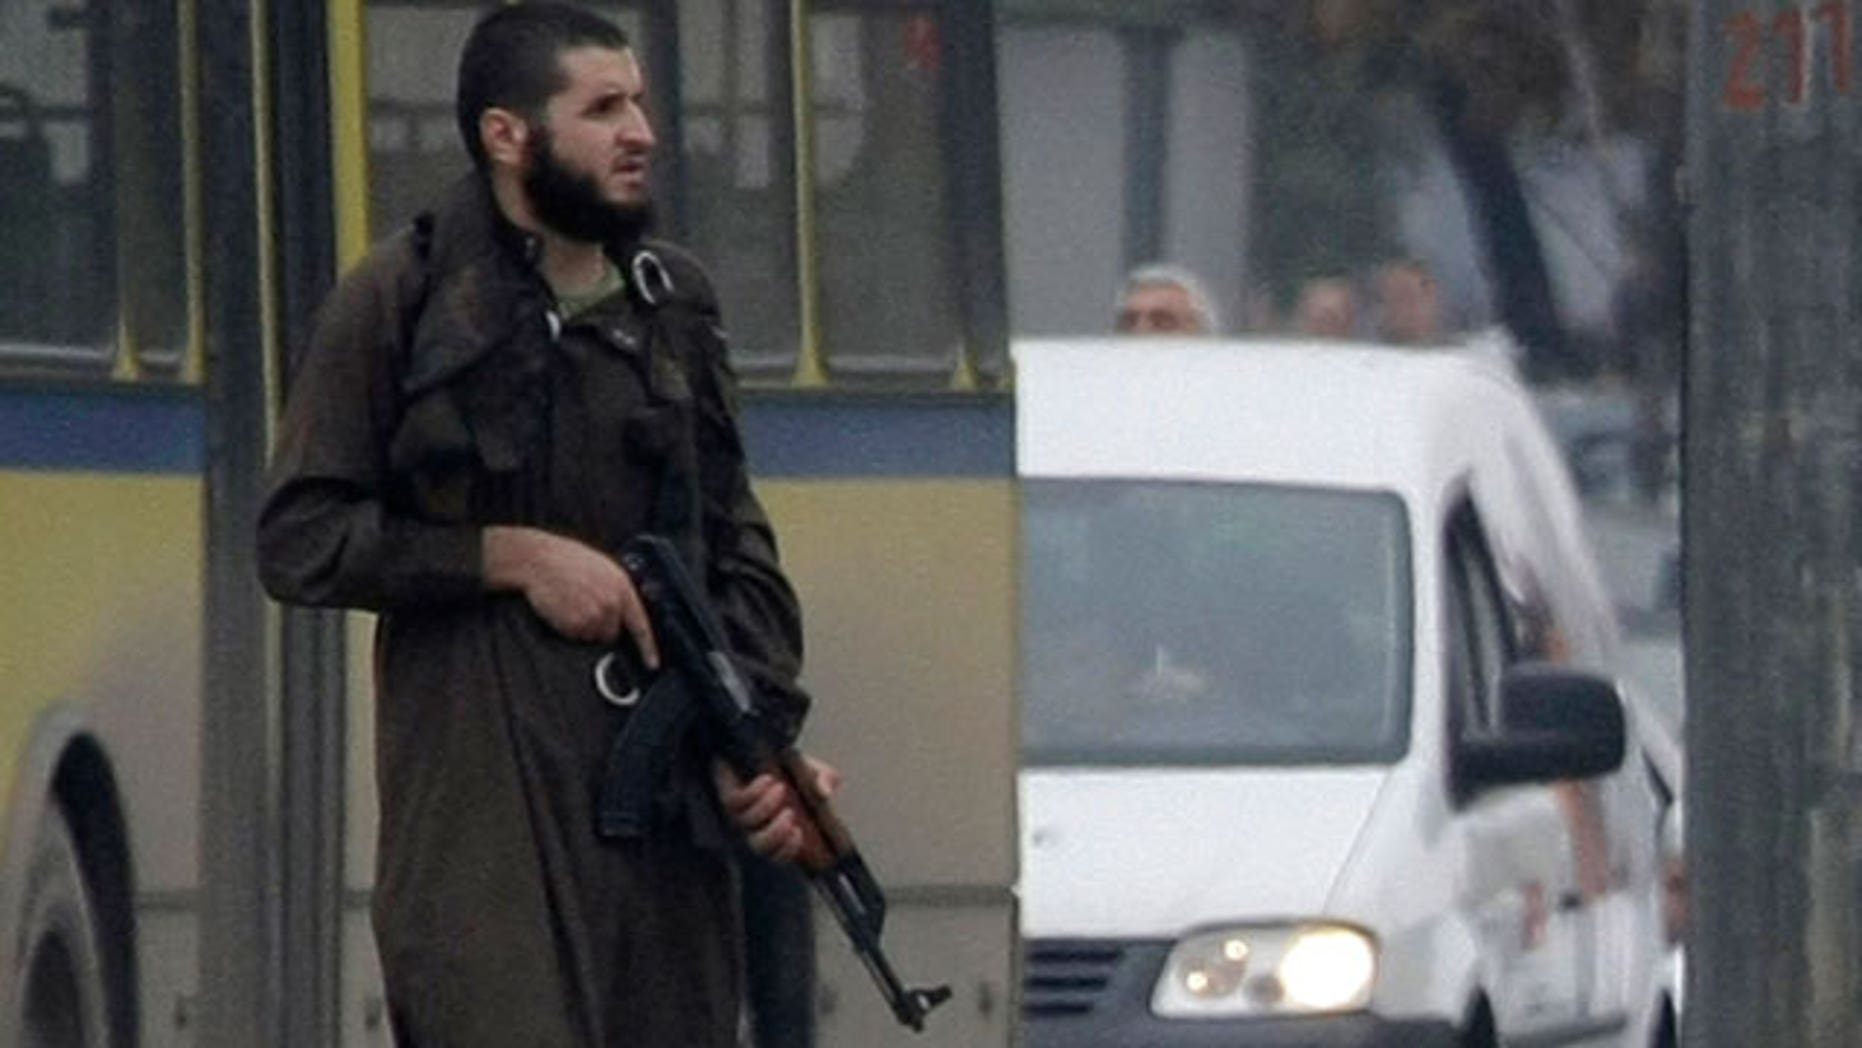 Oct. 28: 2011: An unidentified gunman stands in the center of the street in Sarajevo, Bosnia on a street in front of the U.S. embassy. An unidentified man shot several rounds at pedestrians in downtown Sarajevo on Friday and injured at least one officer before police special forces took him down.